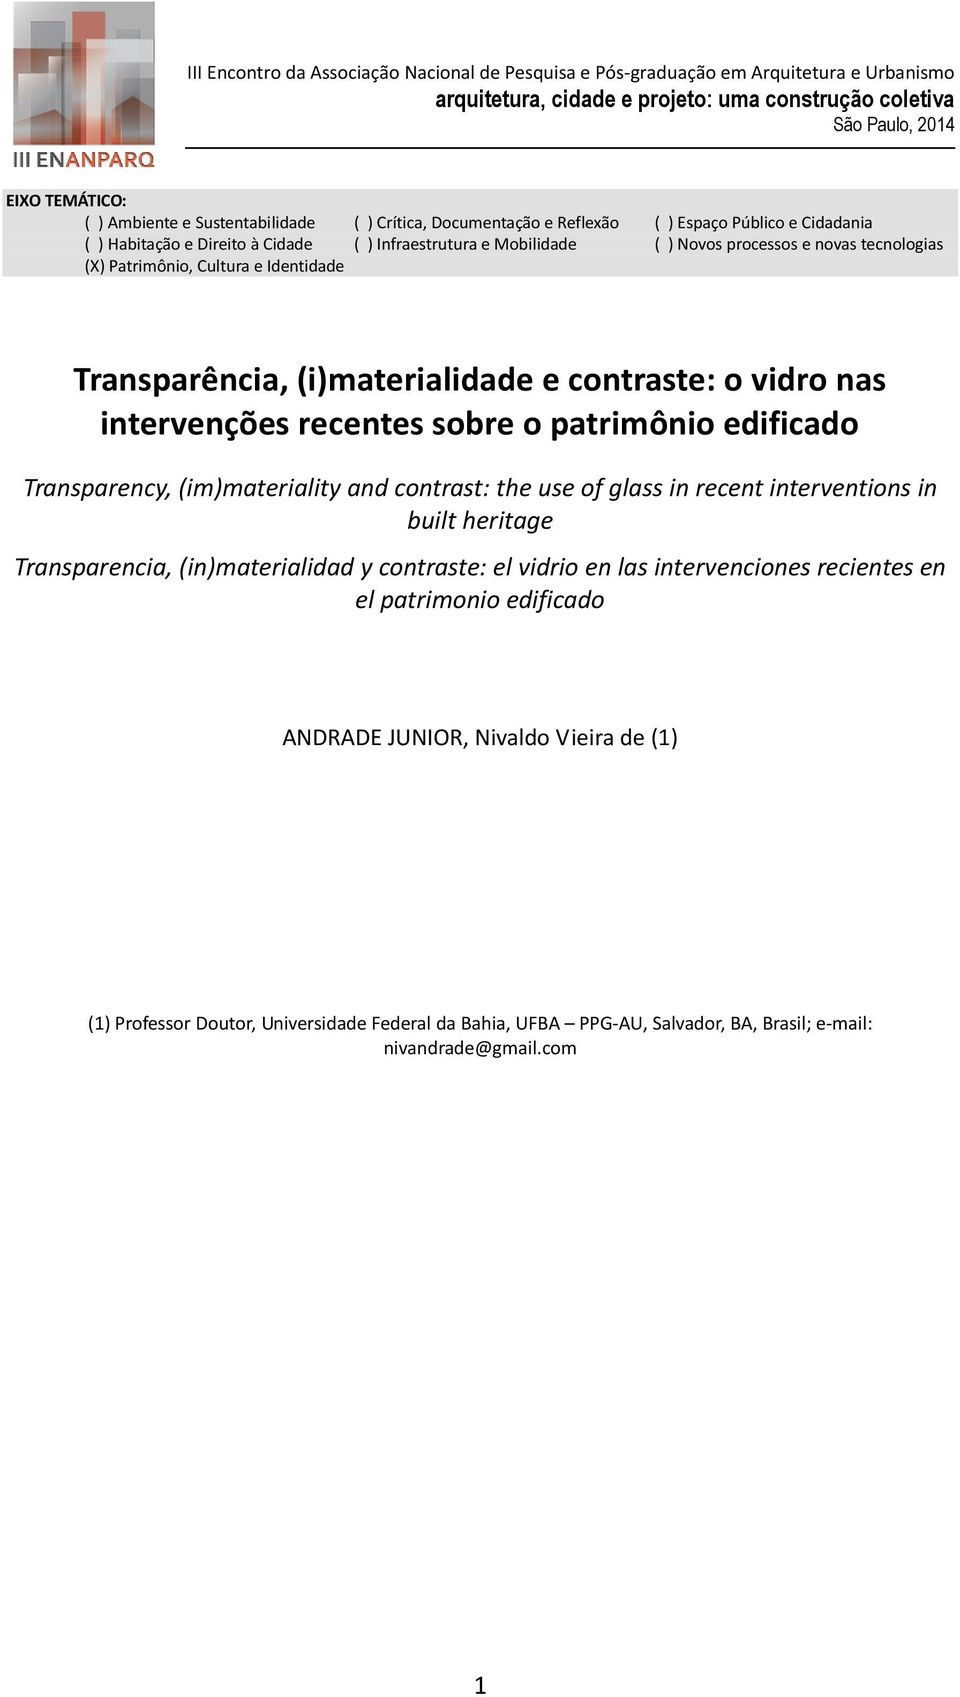 Transparency, (im)materiality and contrast: the use of glass in recent interventions in built heritage Transparencia, (in)materialidad y contraste: el vidrio en las intervenciones